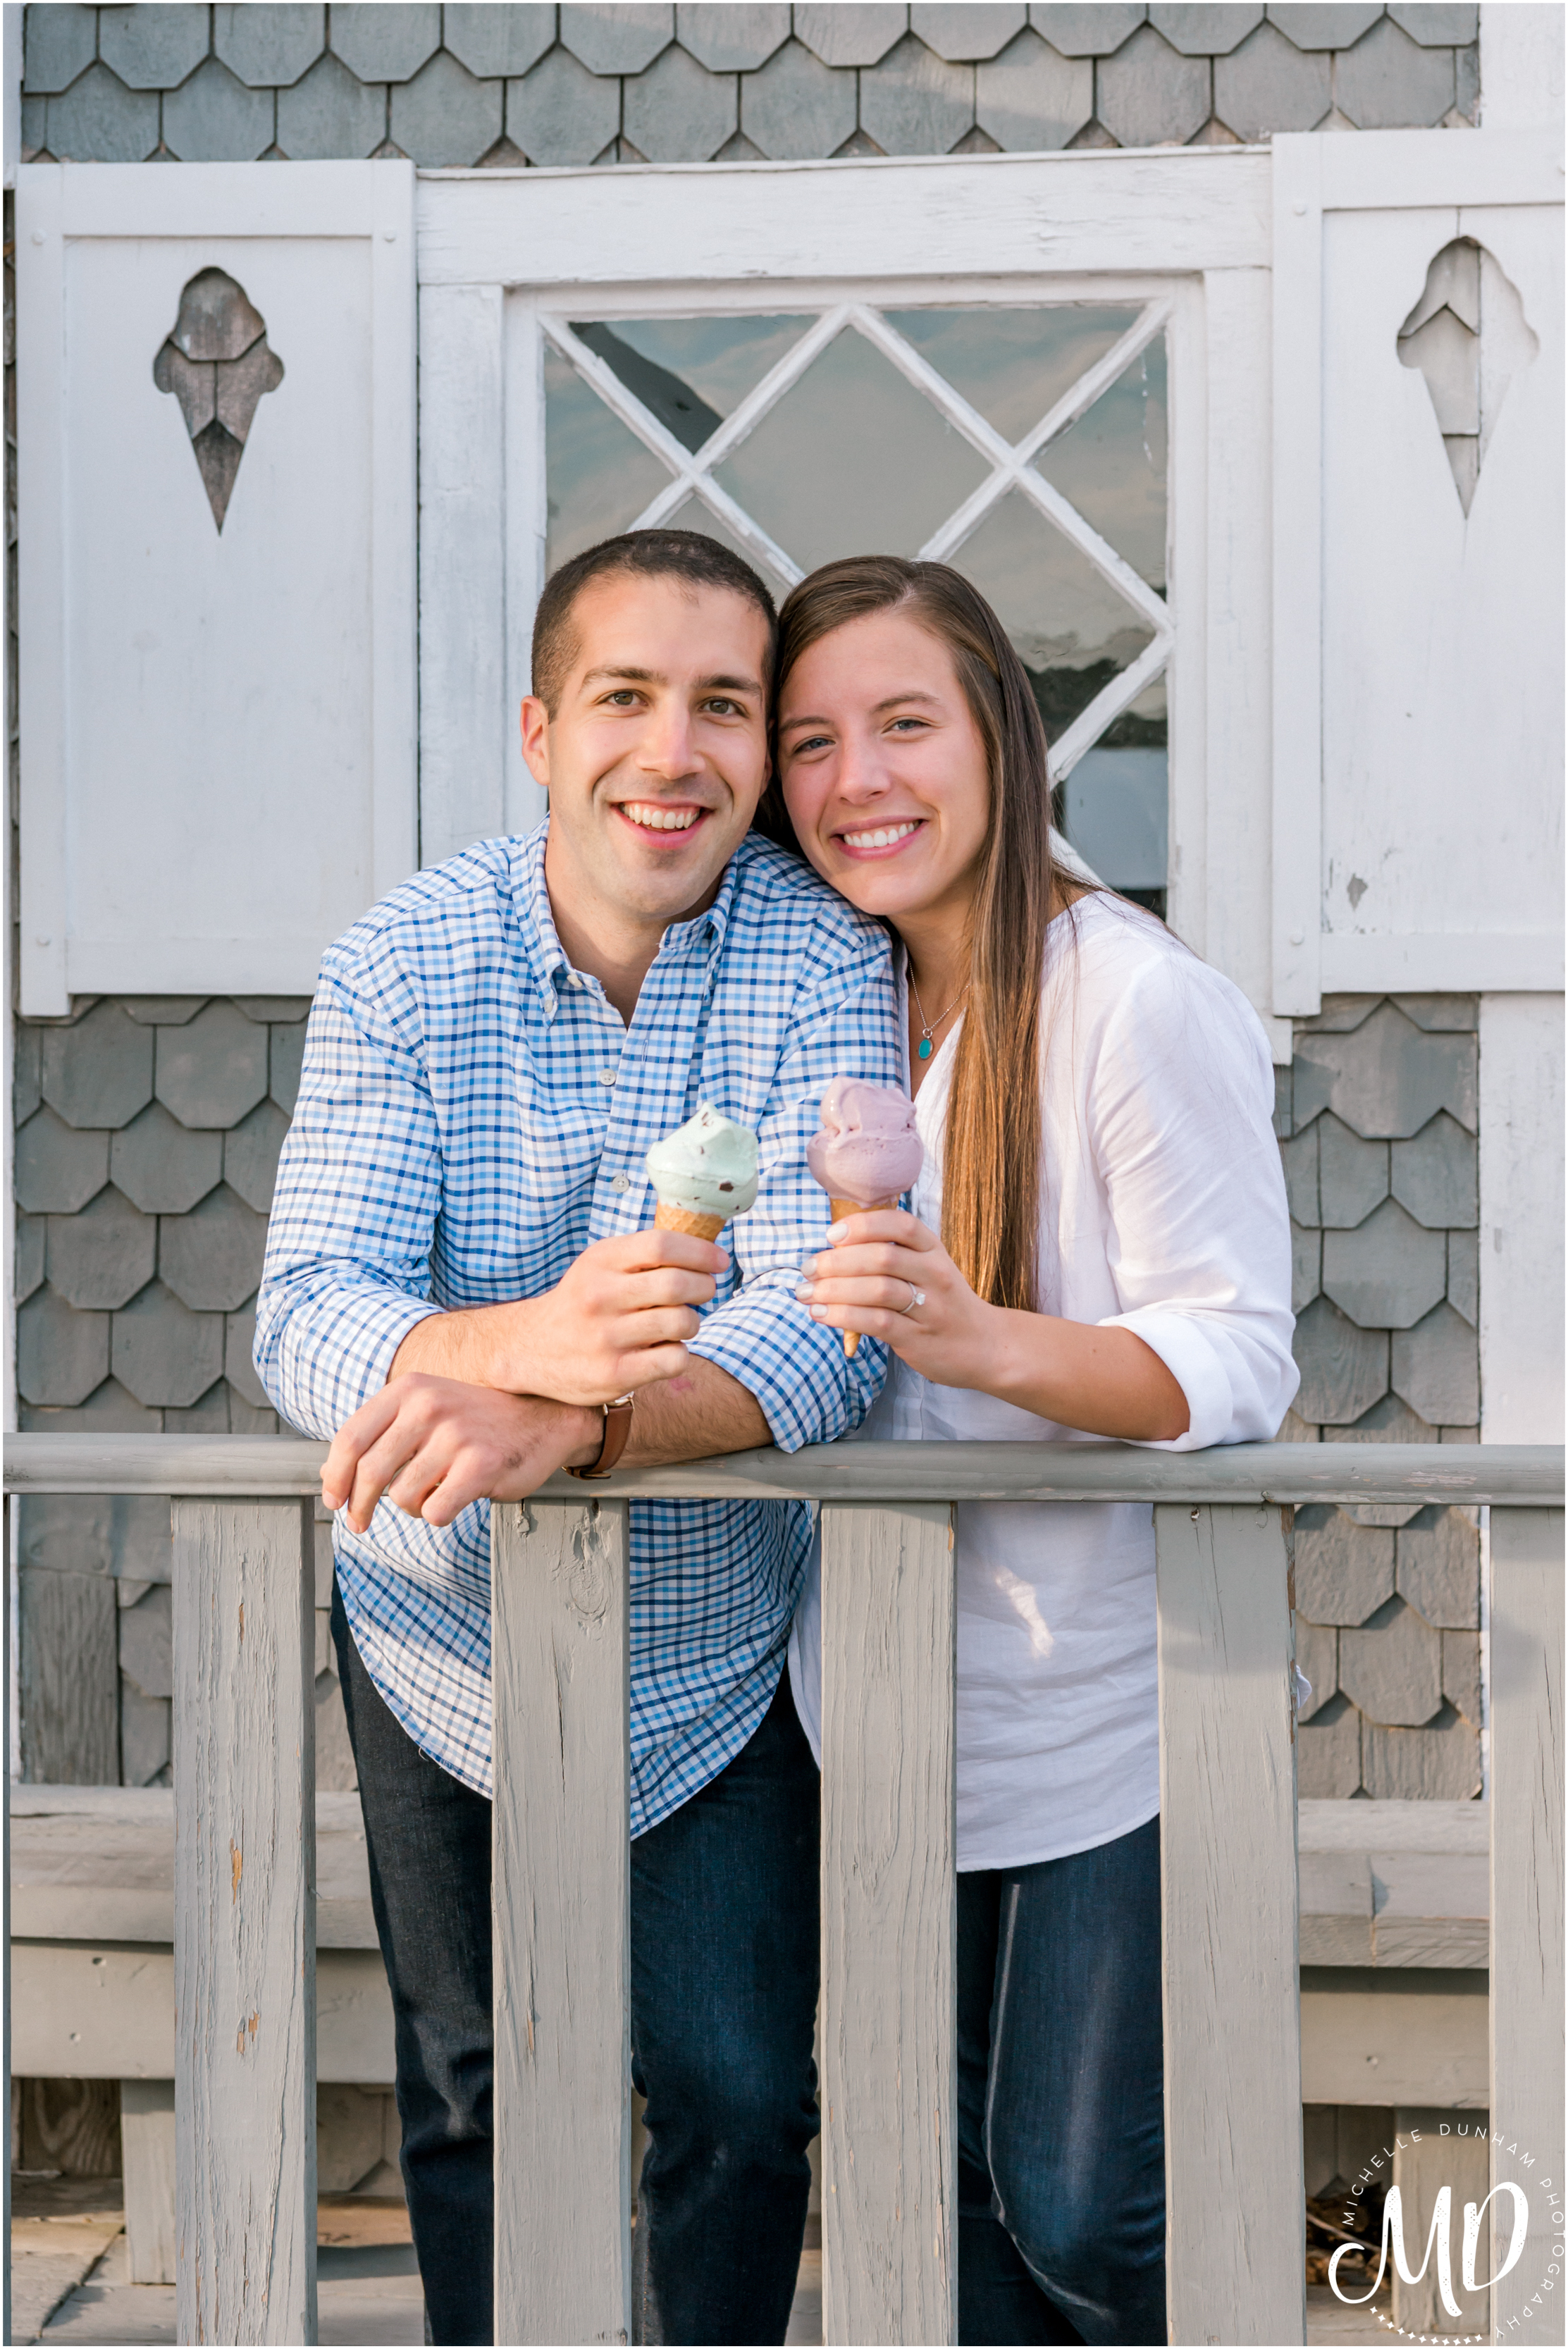 Michelle Dunham Photography-Duxbury-MA-Engagement-FarFars-Ice Cream 8.jpg